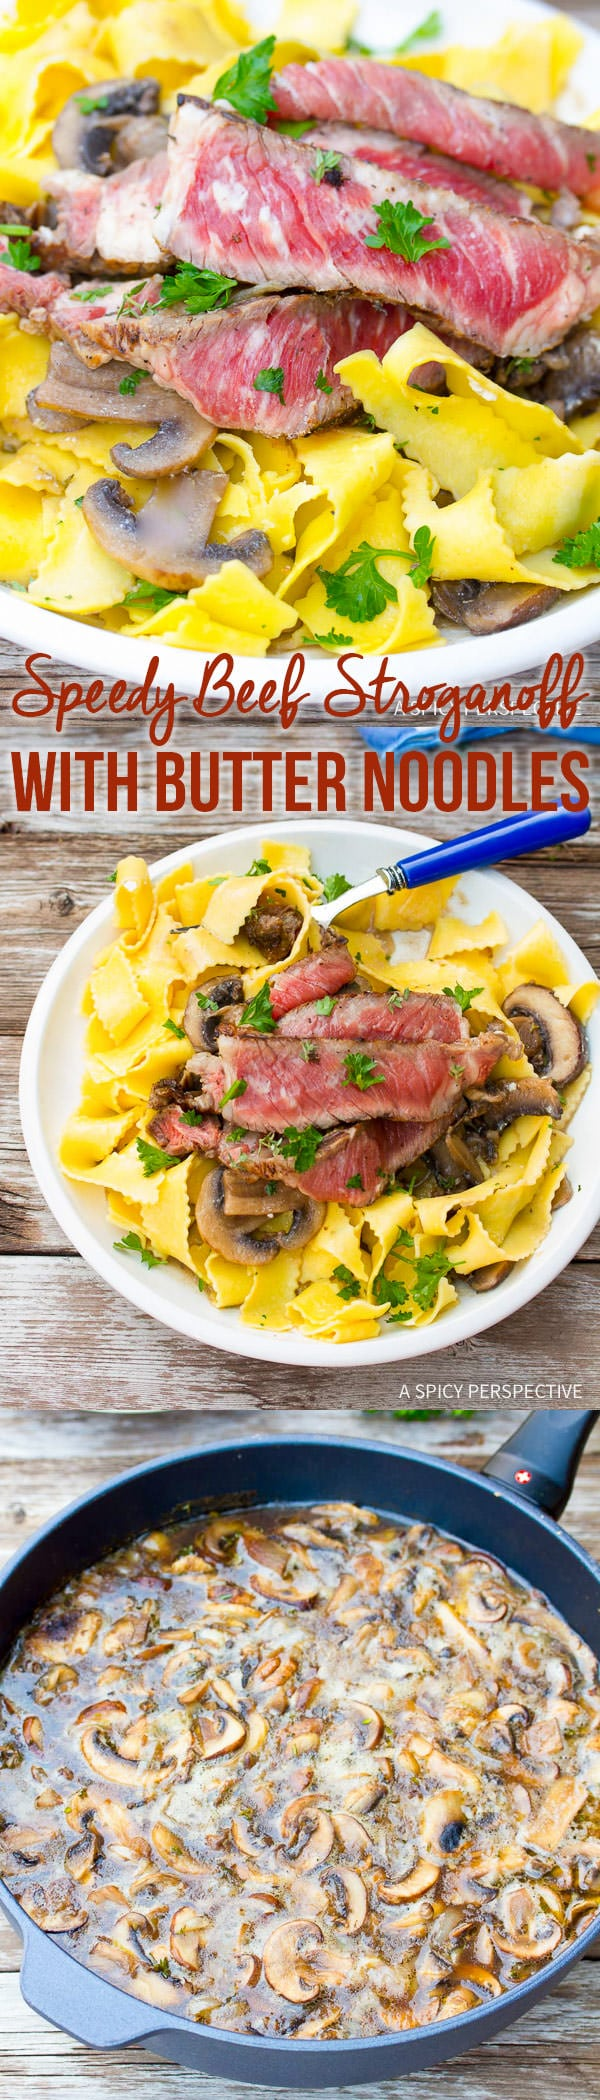 ... Easy Beef Stroganoff Recipe with Butter Noodles on ASpicyPerspective